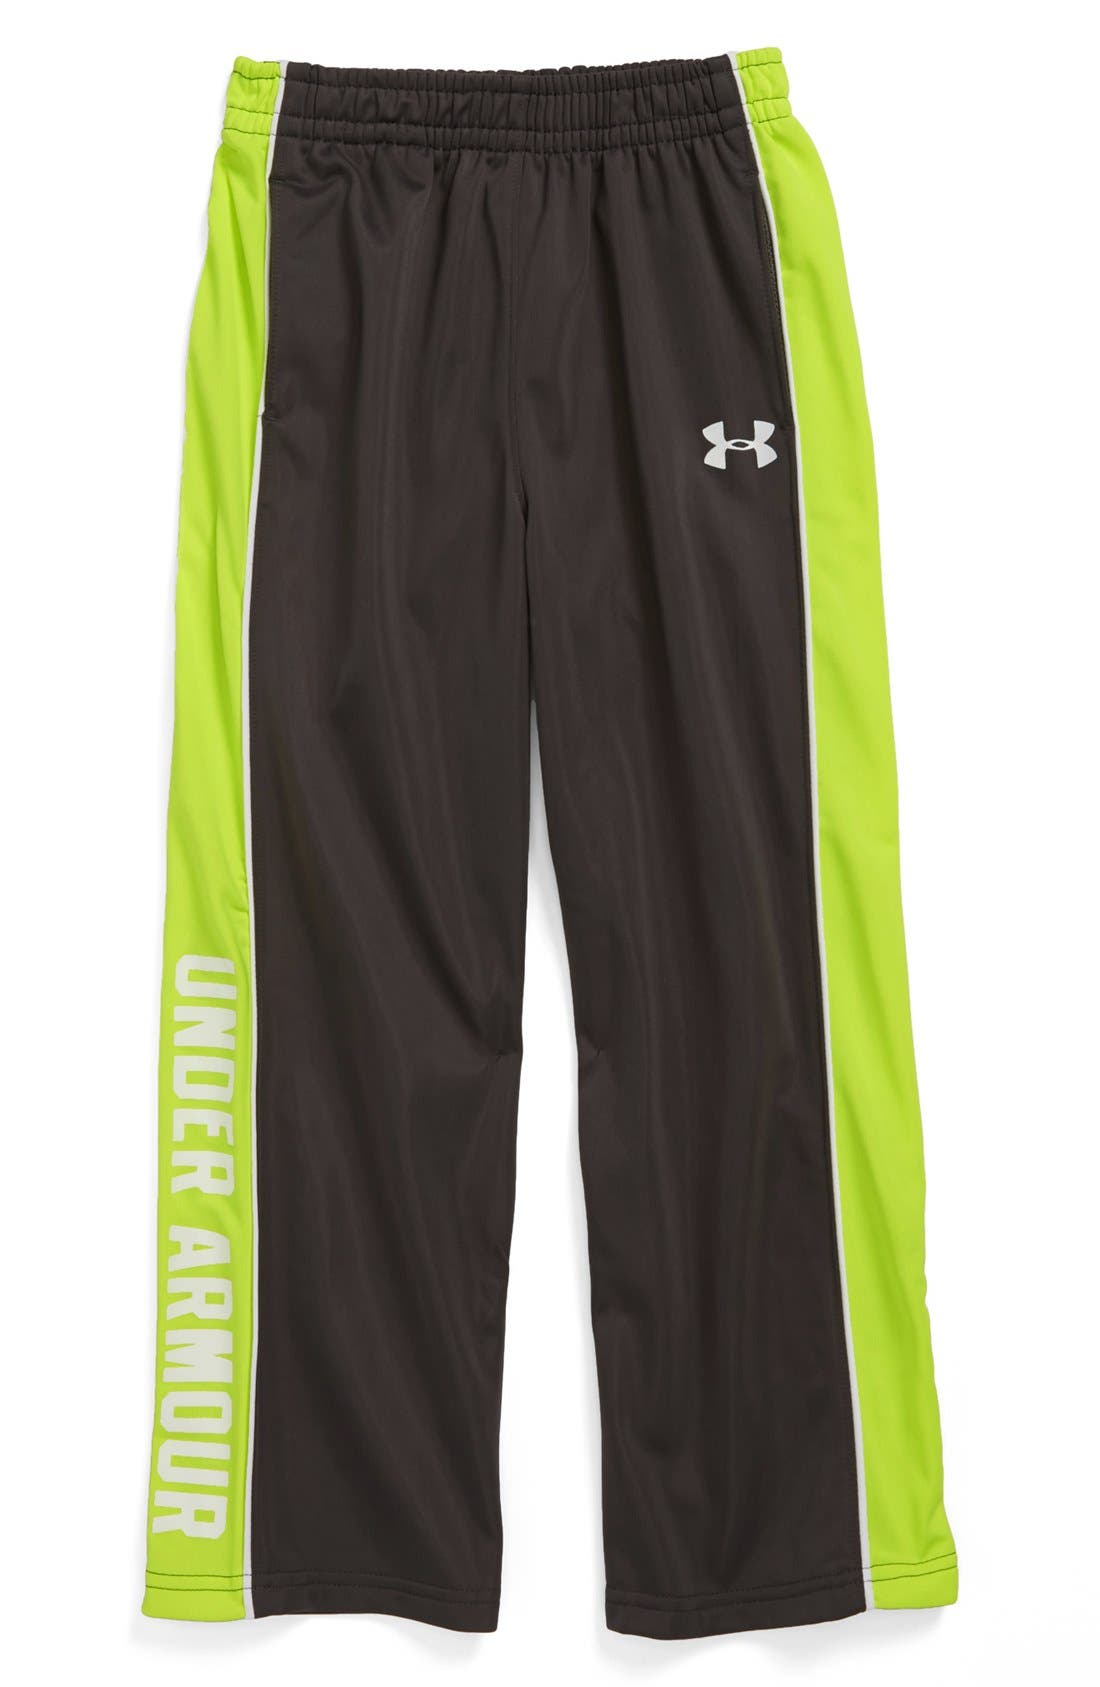 Main Image - Under Armour 'Brawler' Pants (Little Boys)